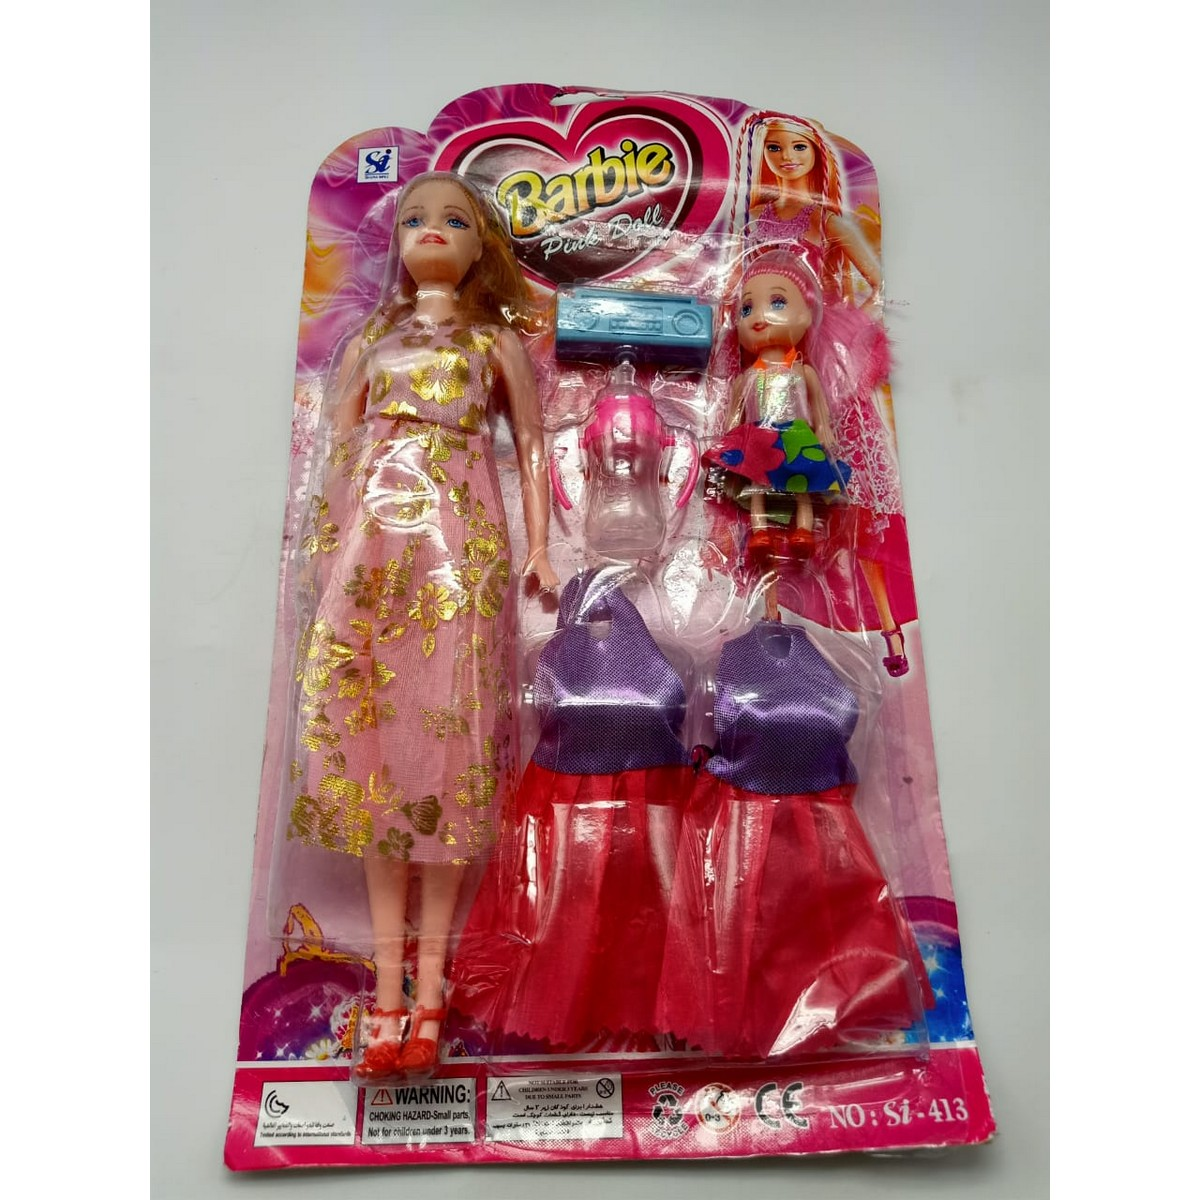 Dolls/Doll With 1 Small Doll , 1 Feeder , 1 Radio And 2 Suites Toys Set For Girls